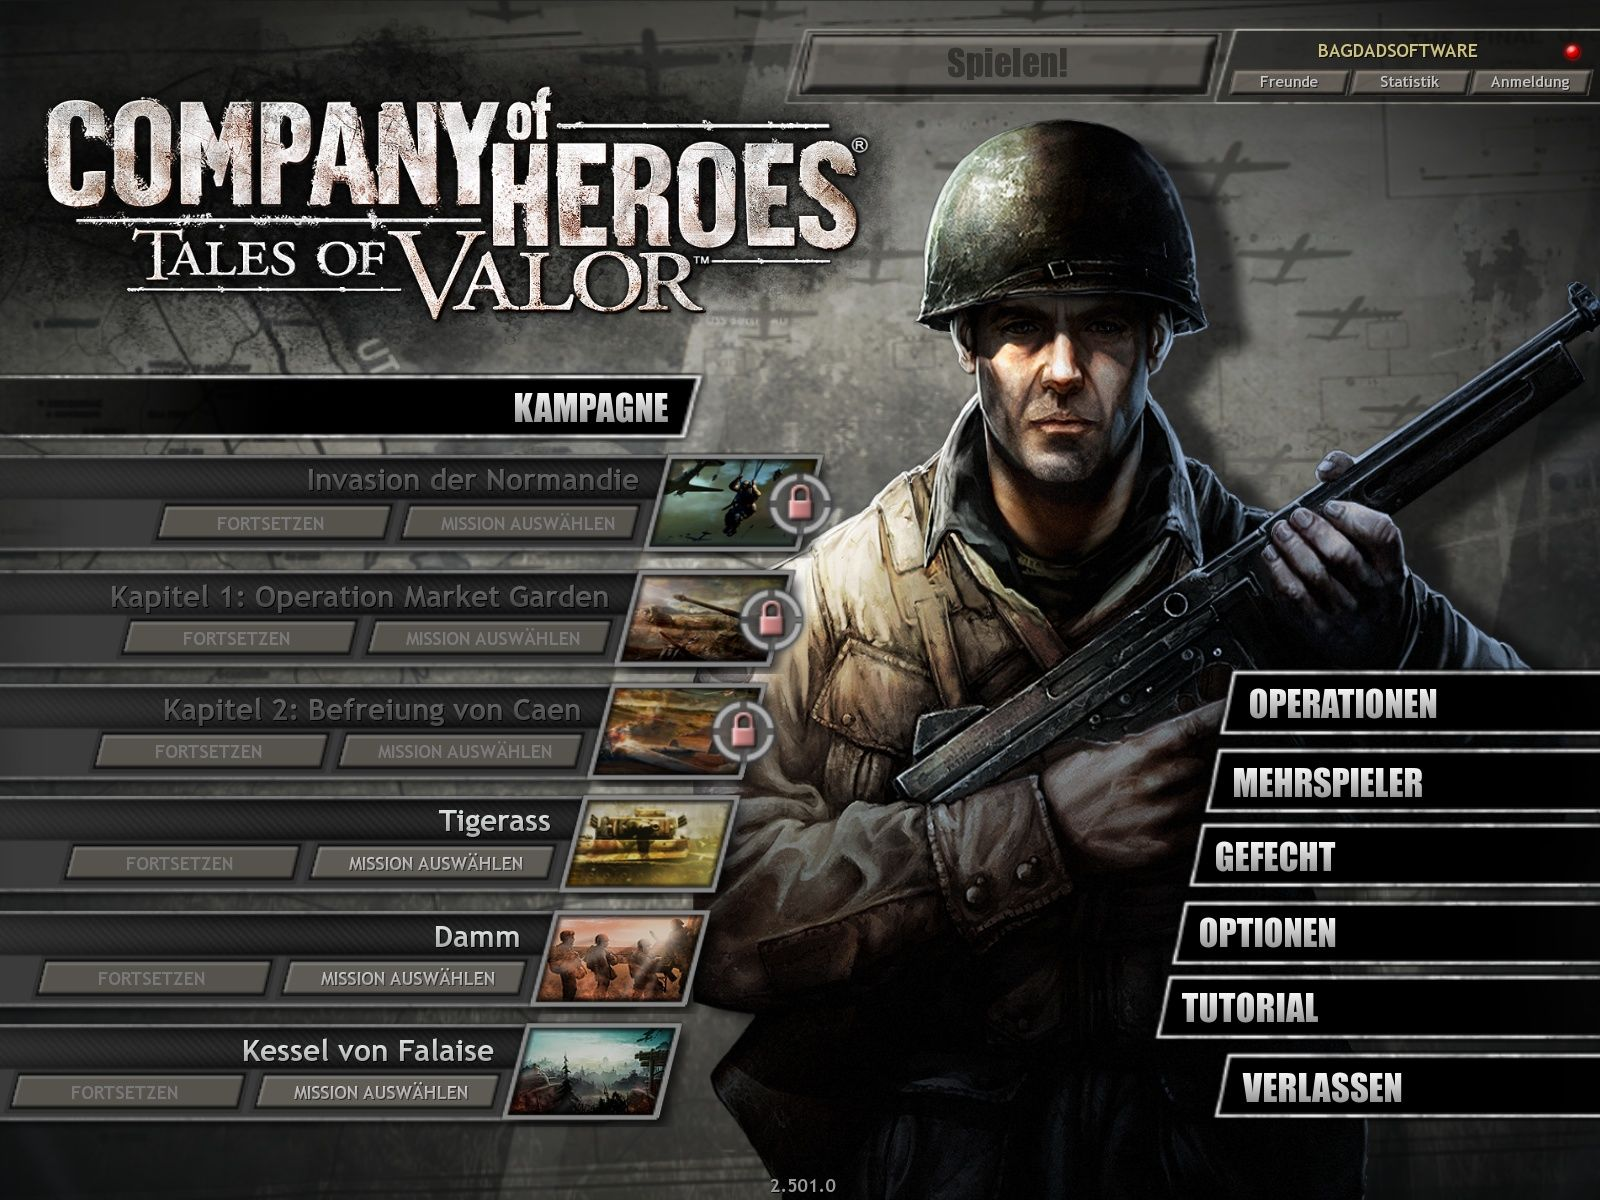 http://www.mobygames.com/images/shots/l/364146-company-of-heroes-tales-of-valor-windows-screenshot-main-menus.jpg